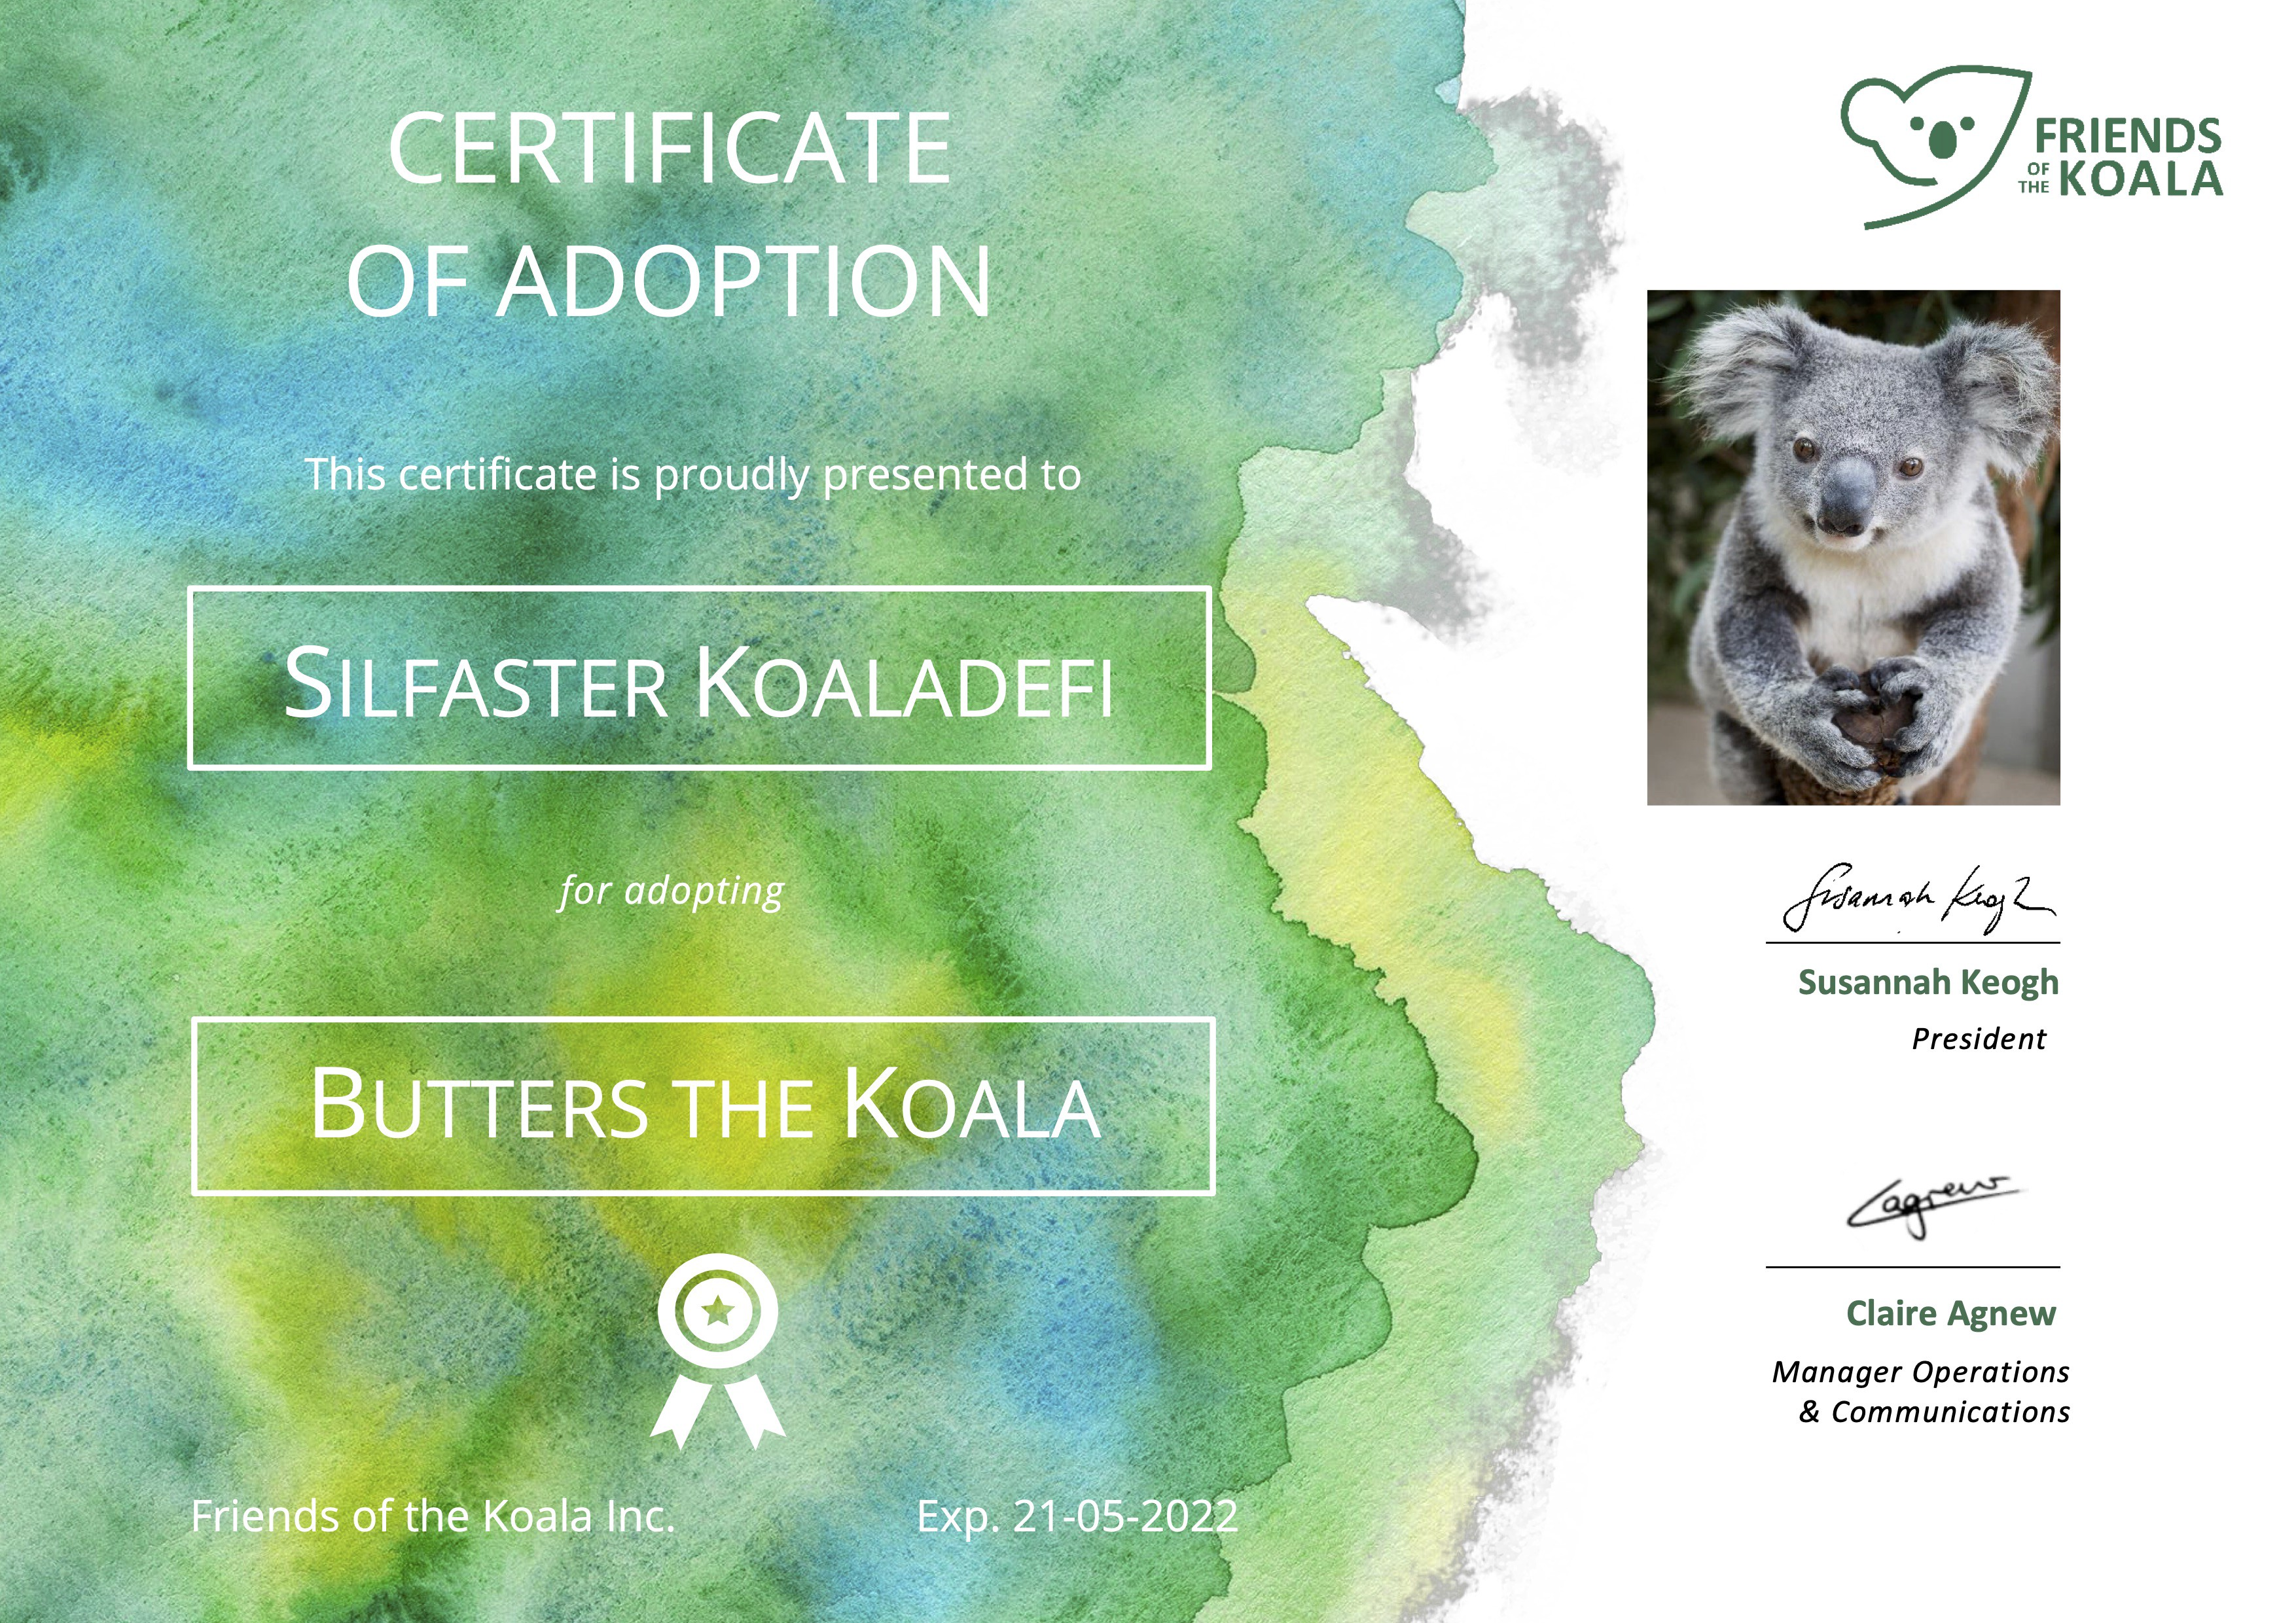 https://friendsofthekoala.org/ Friends of the Koala is committed to conserving koalas and preserving and enhancing their habitat, particularly in the Northern Rivers region of New South Wales. In doing this, we aim to make a key contribution to Australia's biodiversity.